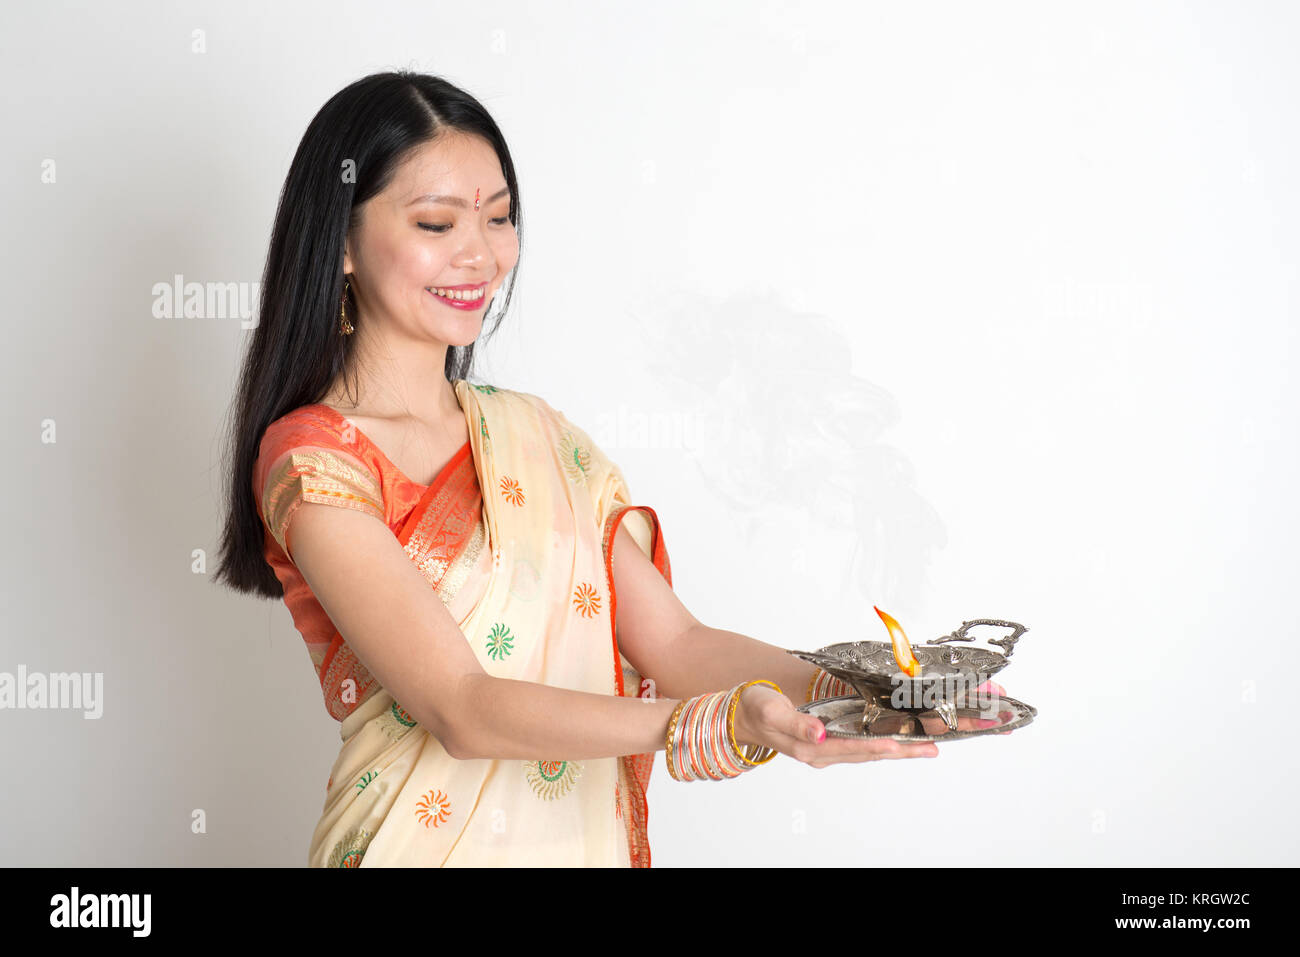 Female with Indian sari dress holding oil lamp - Stock Image